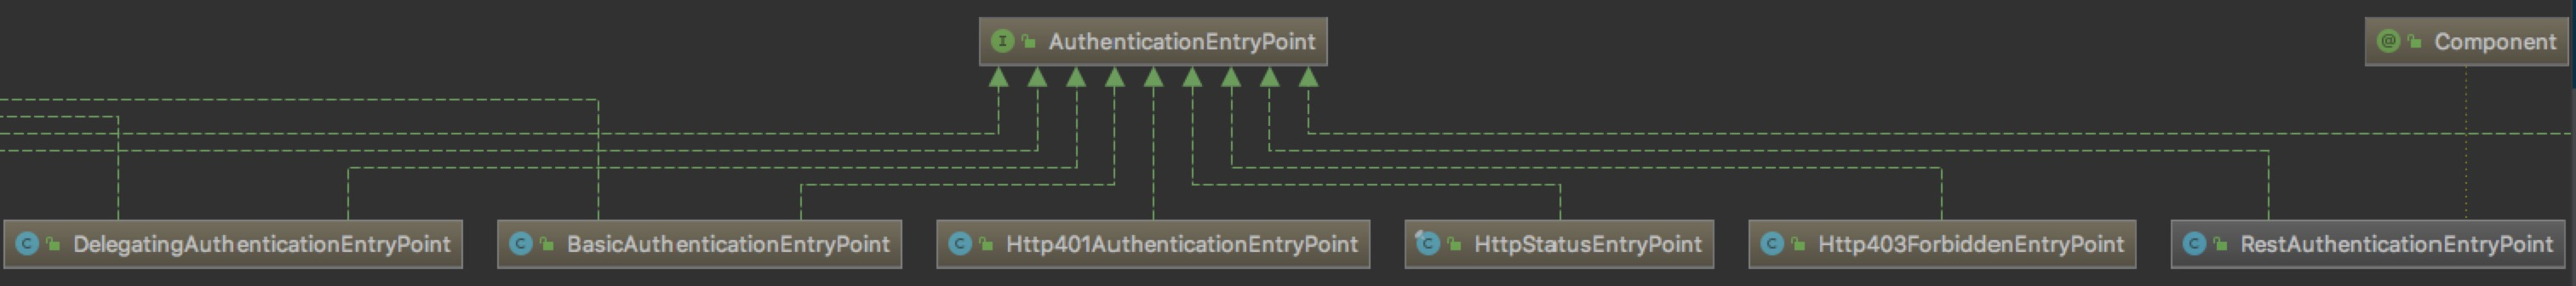 20196211823-AuthenticationEntryPoint-interface